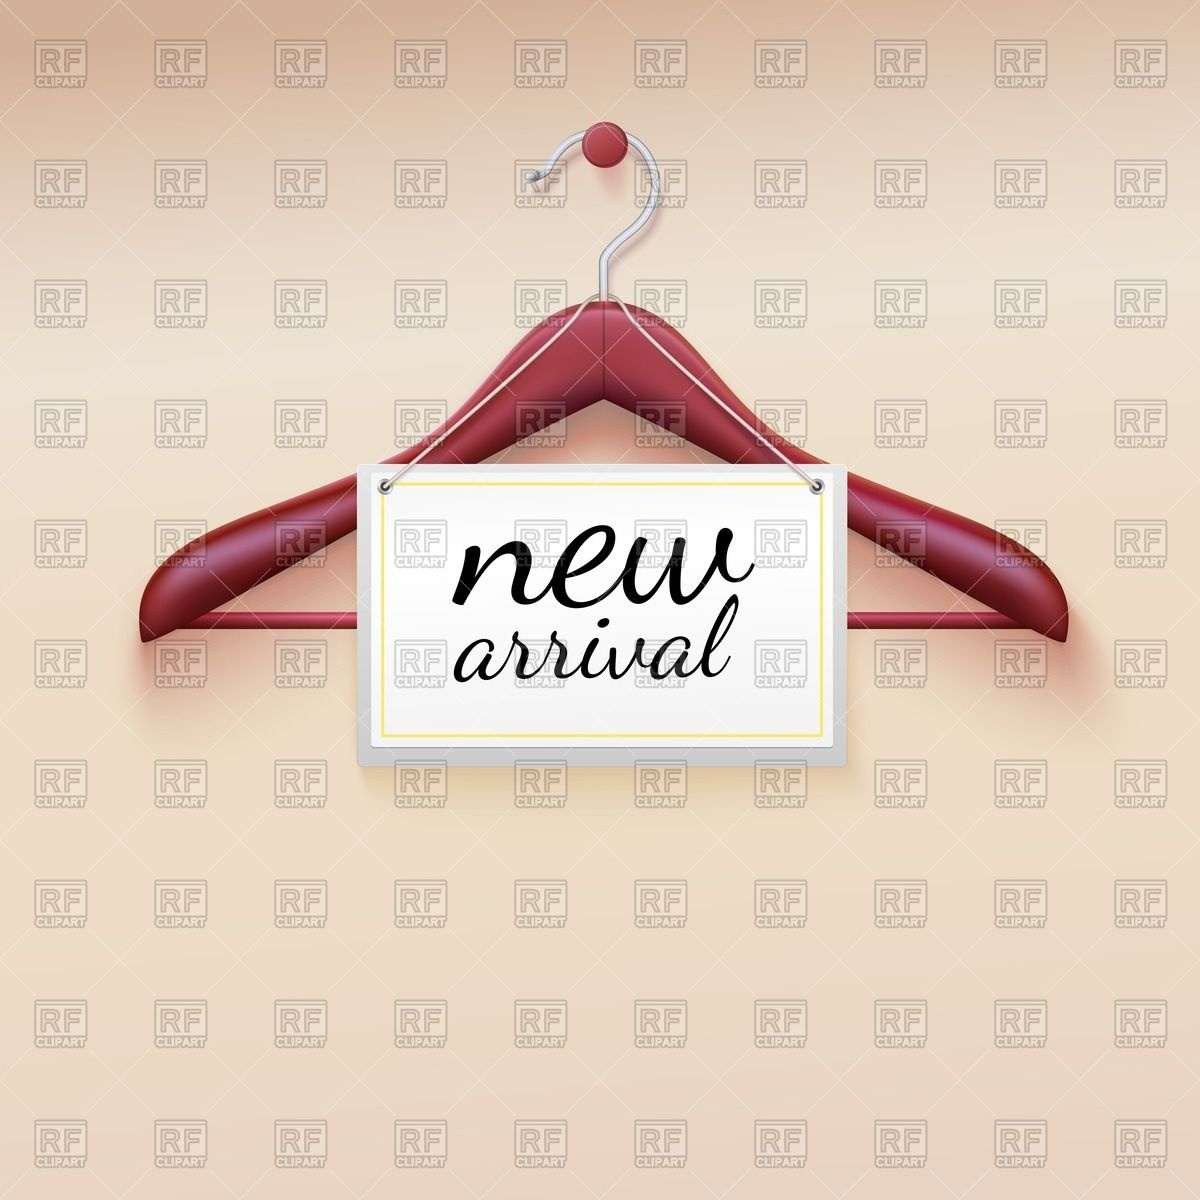 Clothes Hanger With Tag New Arrival Objects Download Royalty Free